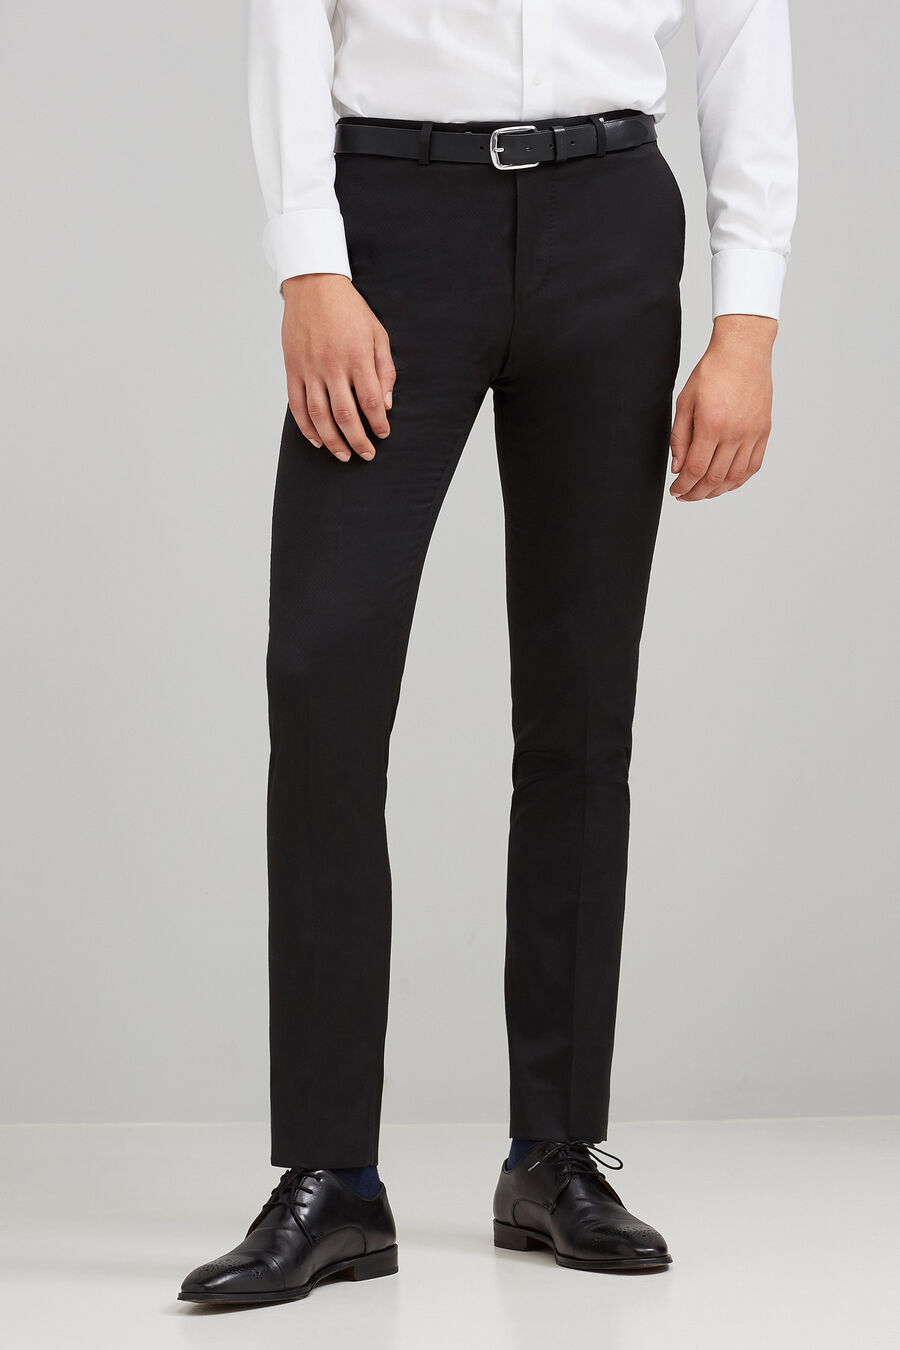 Tailored fit trouser separates